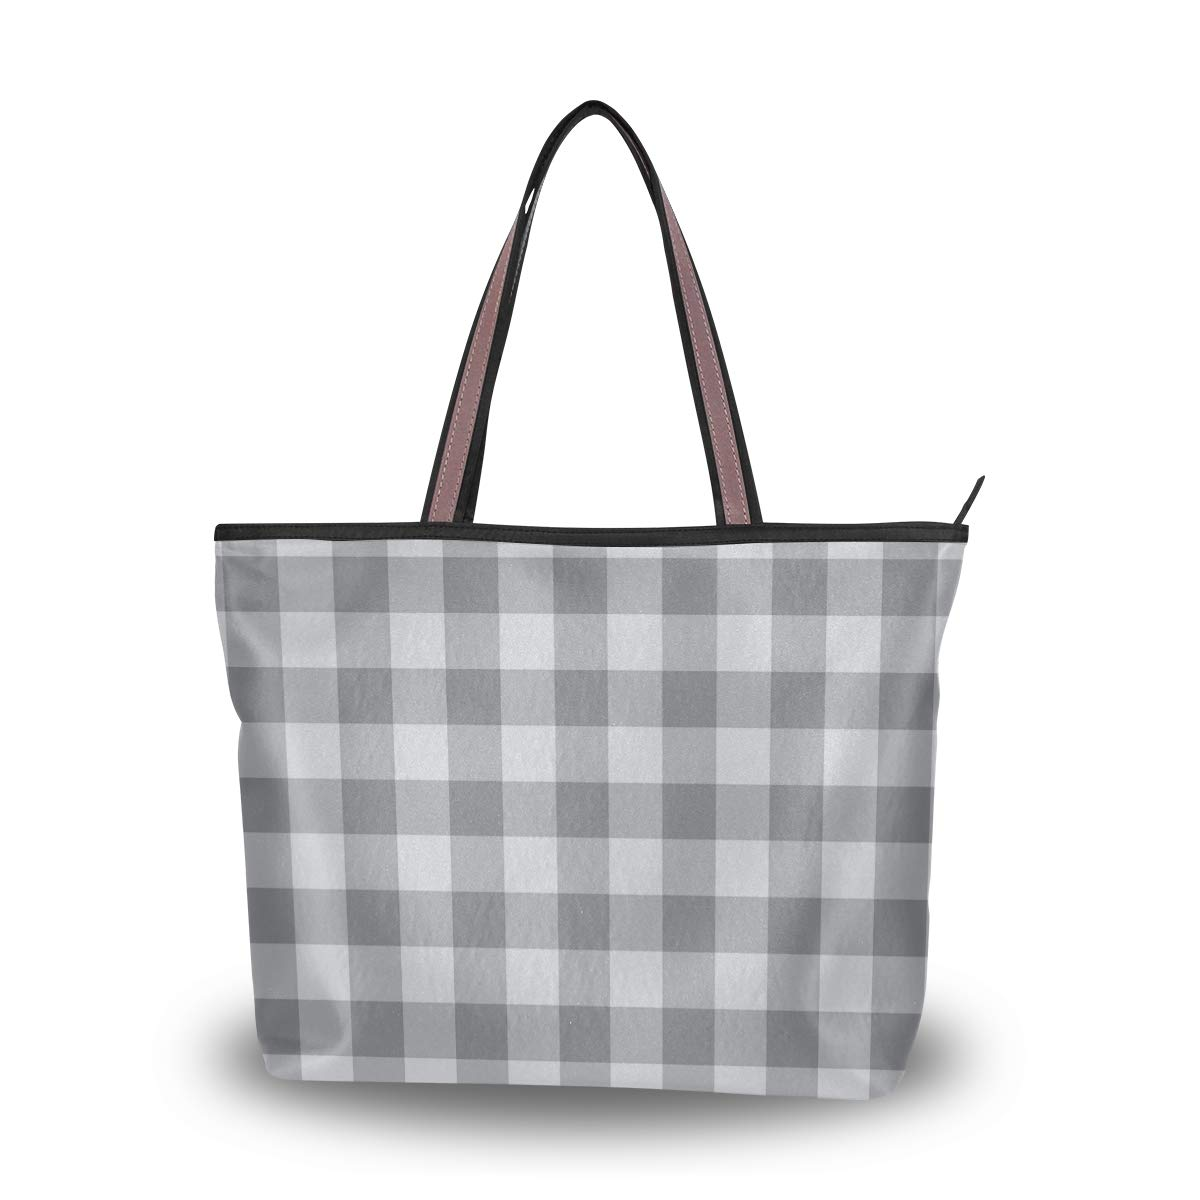 7fa7f55c2e73 Amazon.com  Clean Light Gray Checkered Pattern Travel Shopping Zipper  Female Bag Ladies Foldable Waterproof Overnight Mini Student Bag Light  Handbag ...